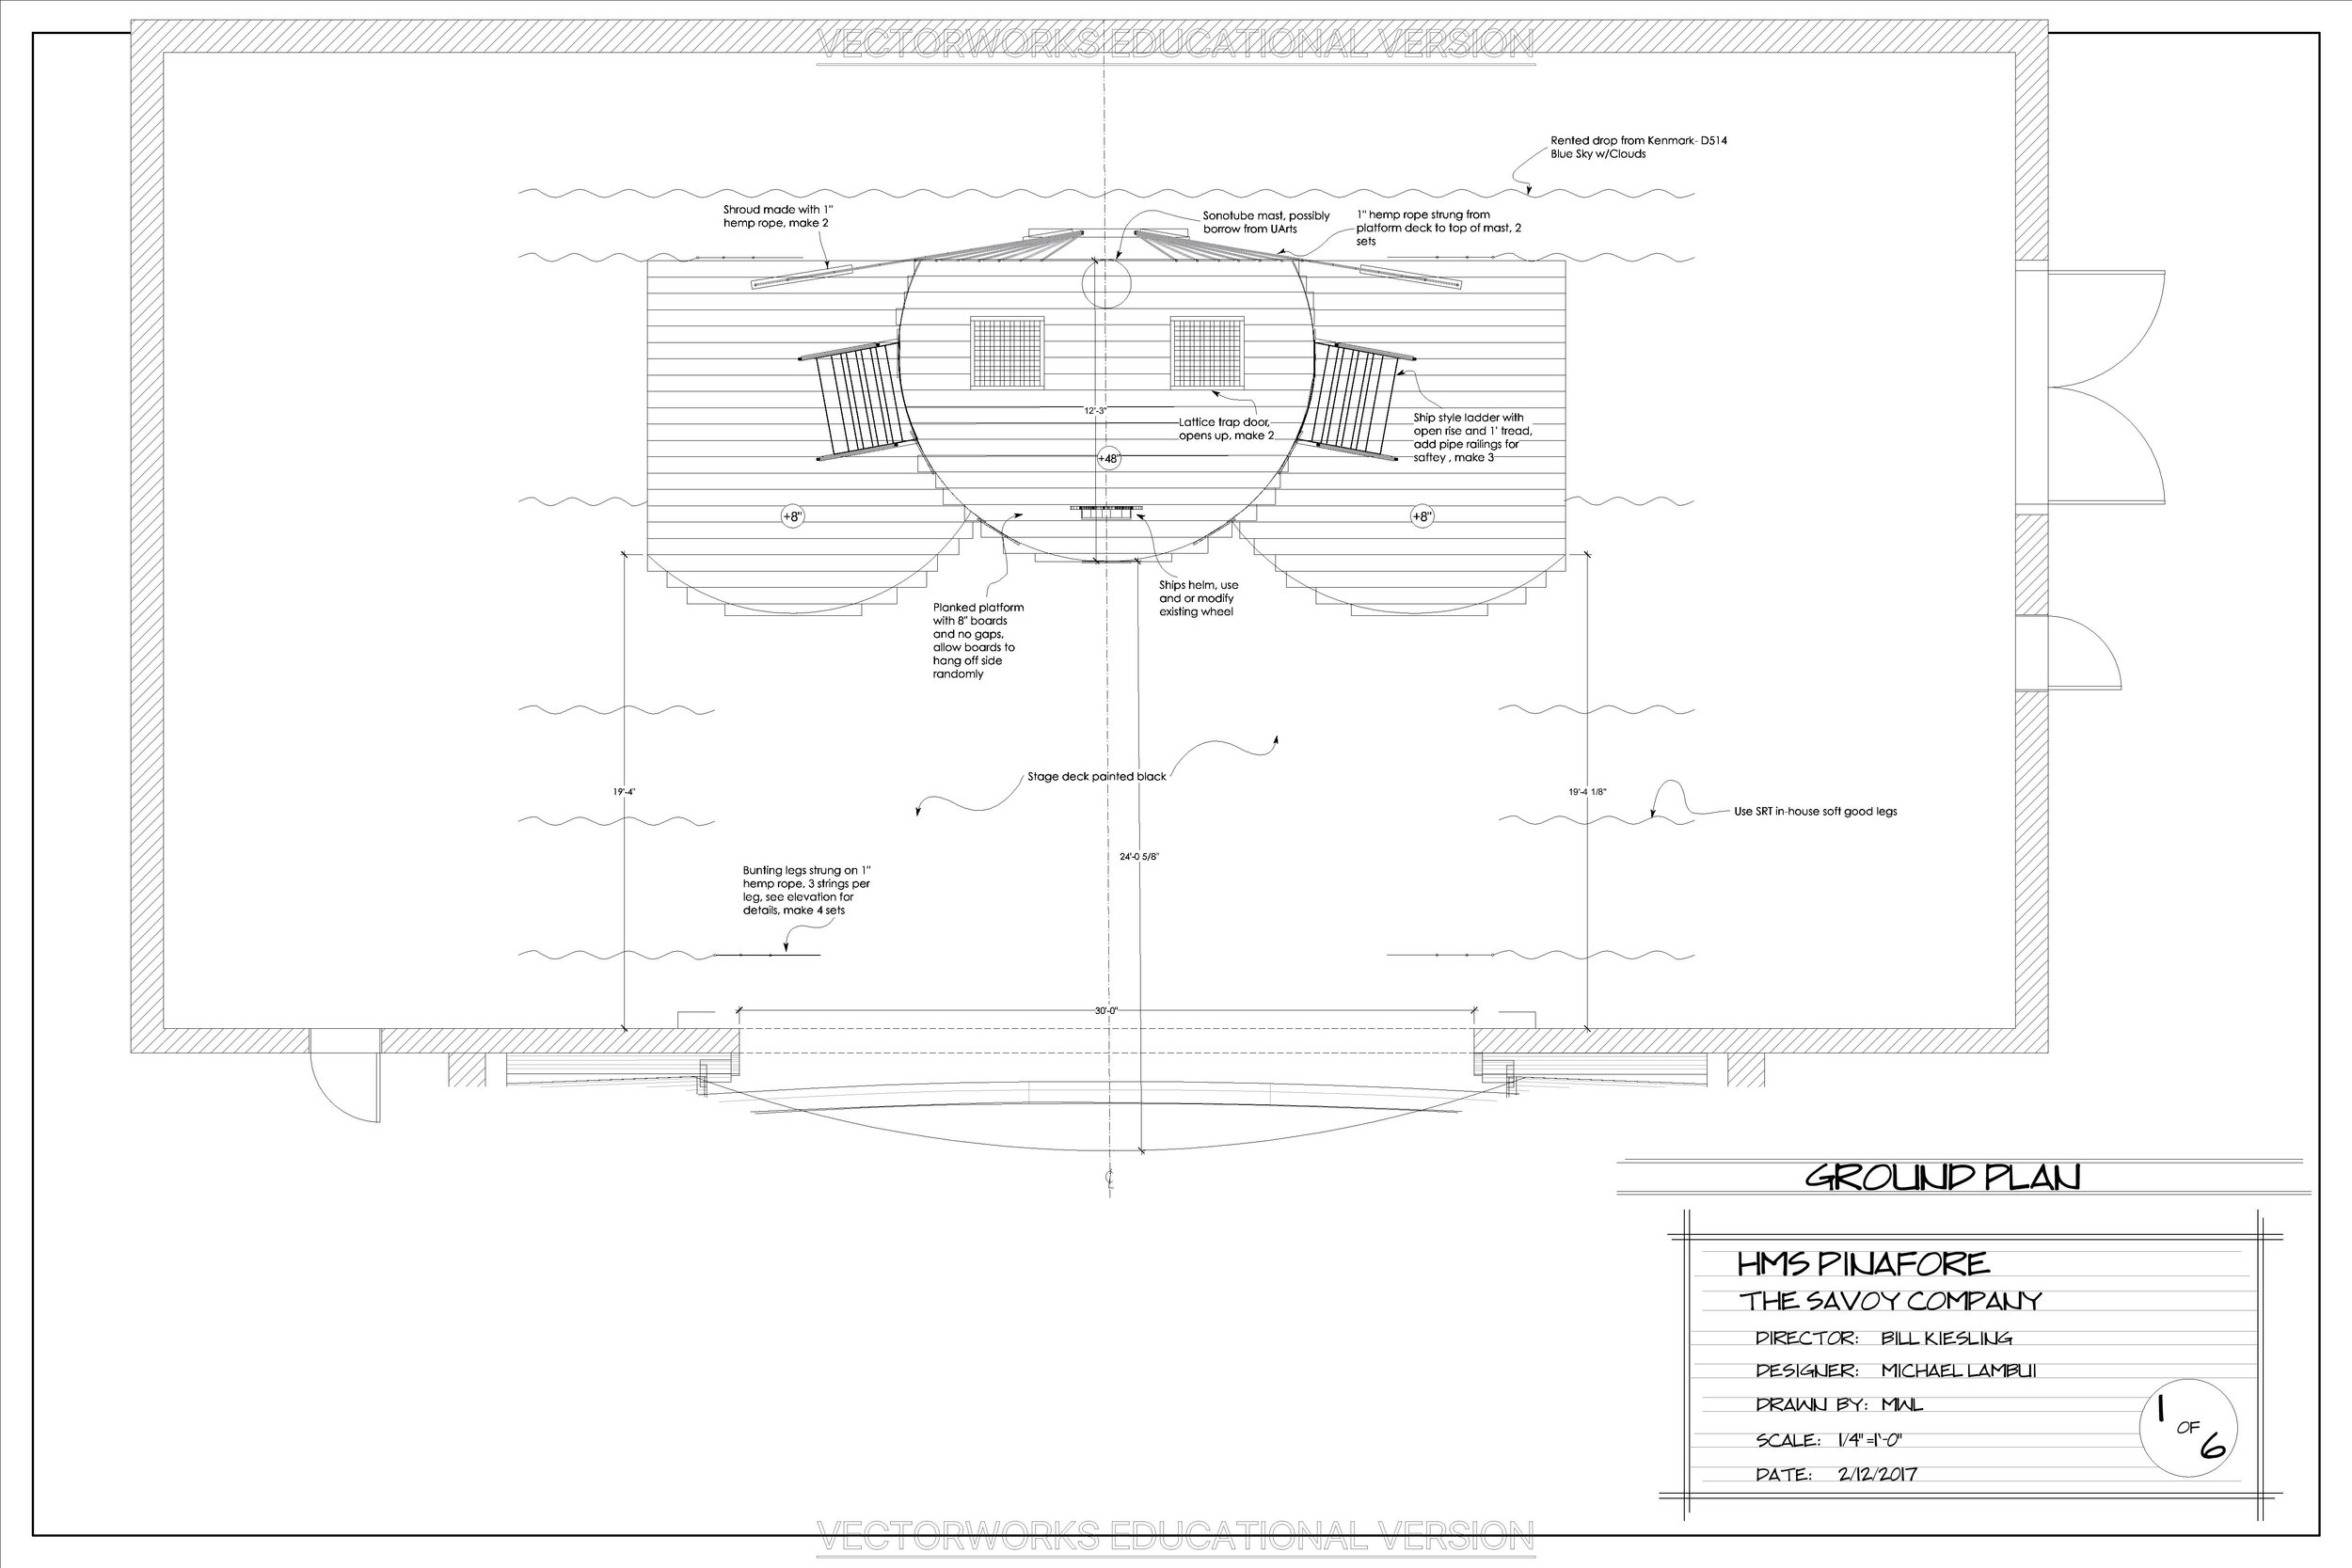 HMS Pinafore Plans_v1 36X24-page-001.jpg